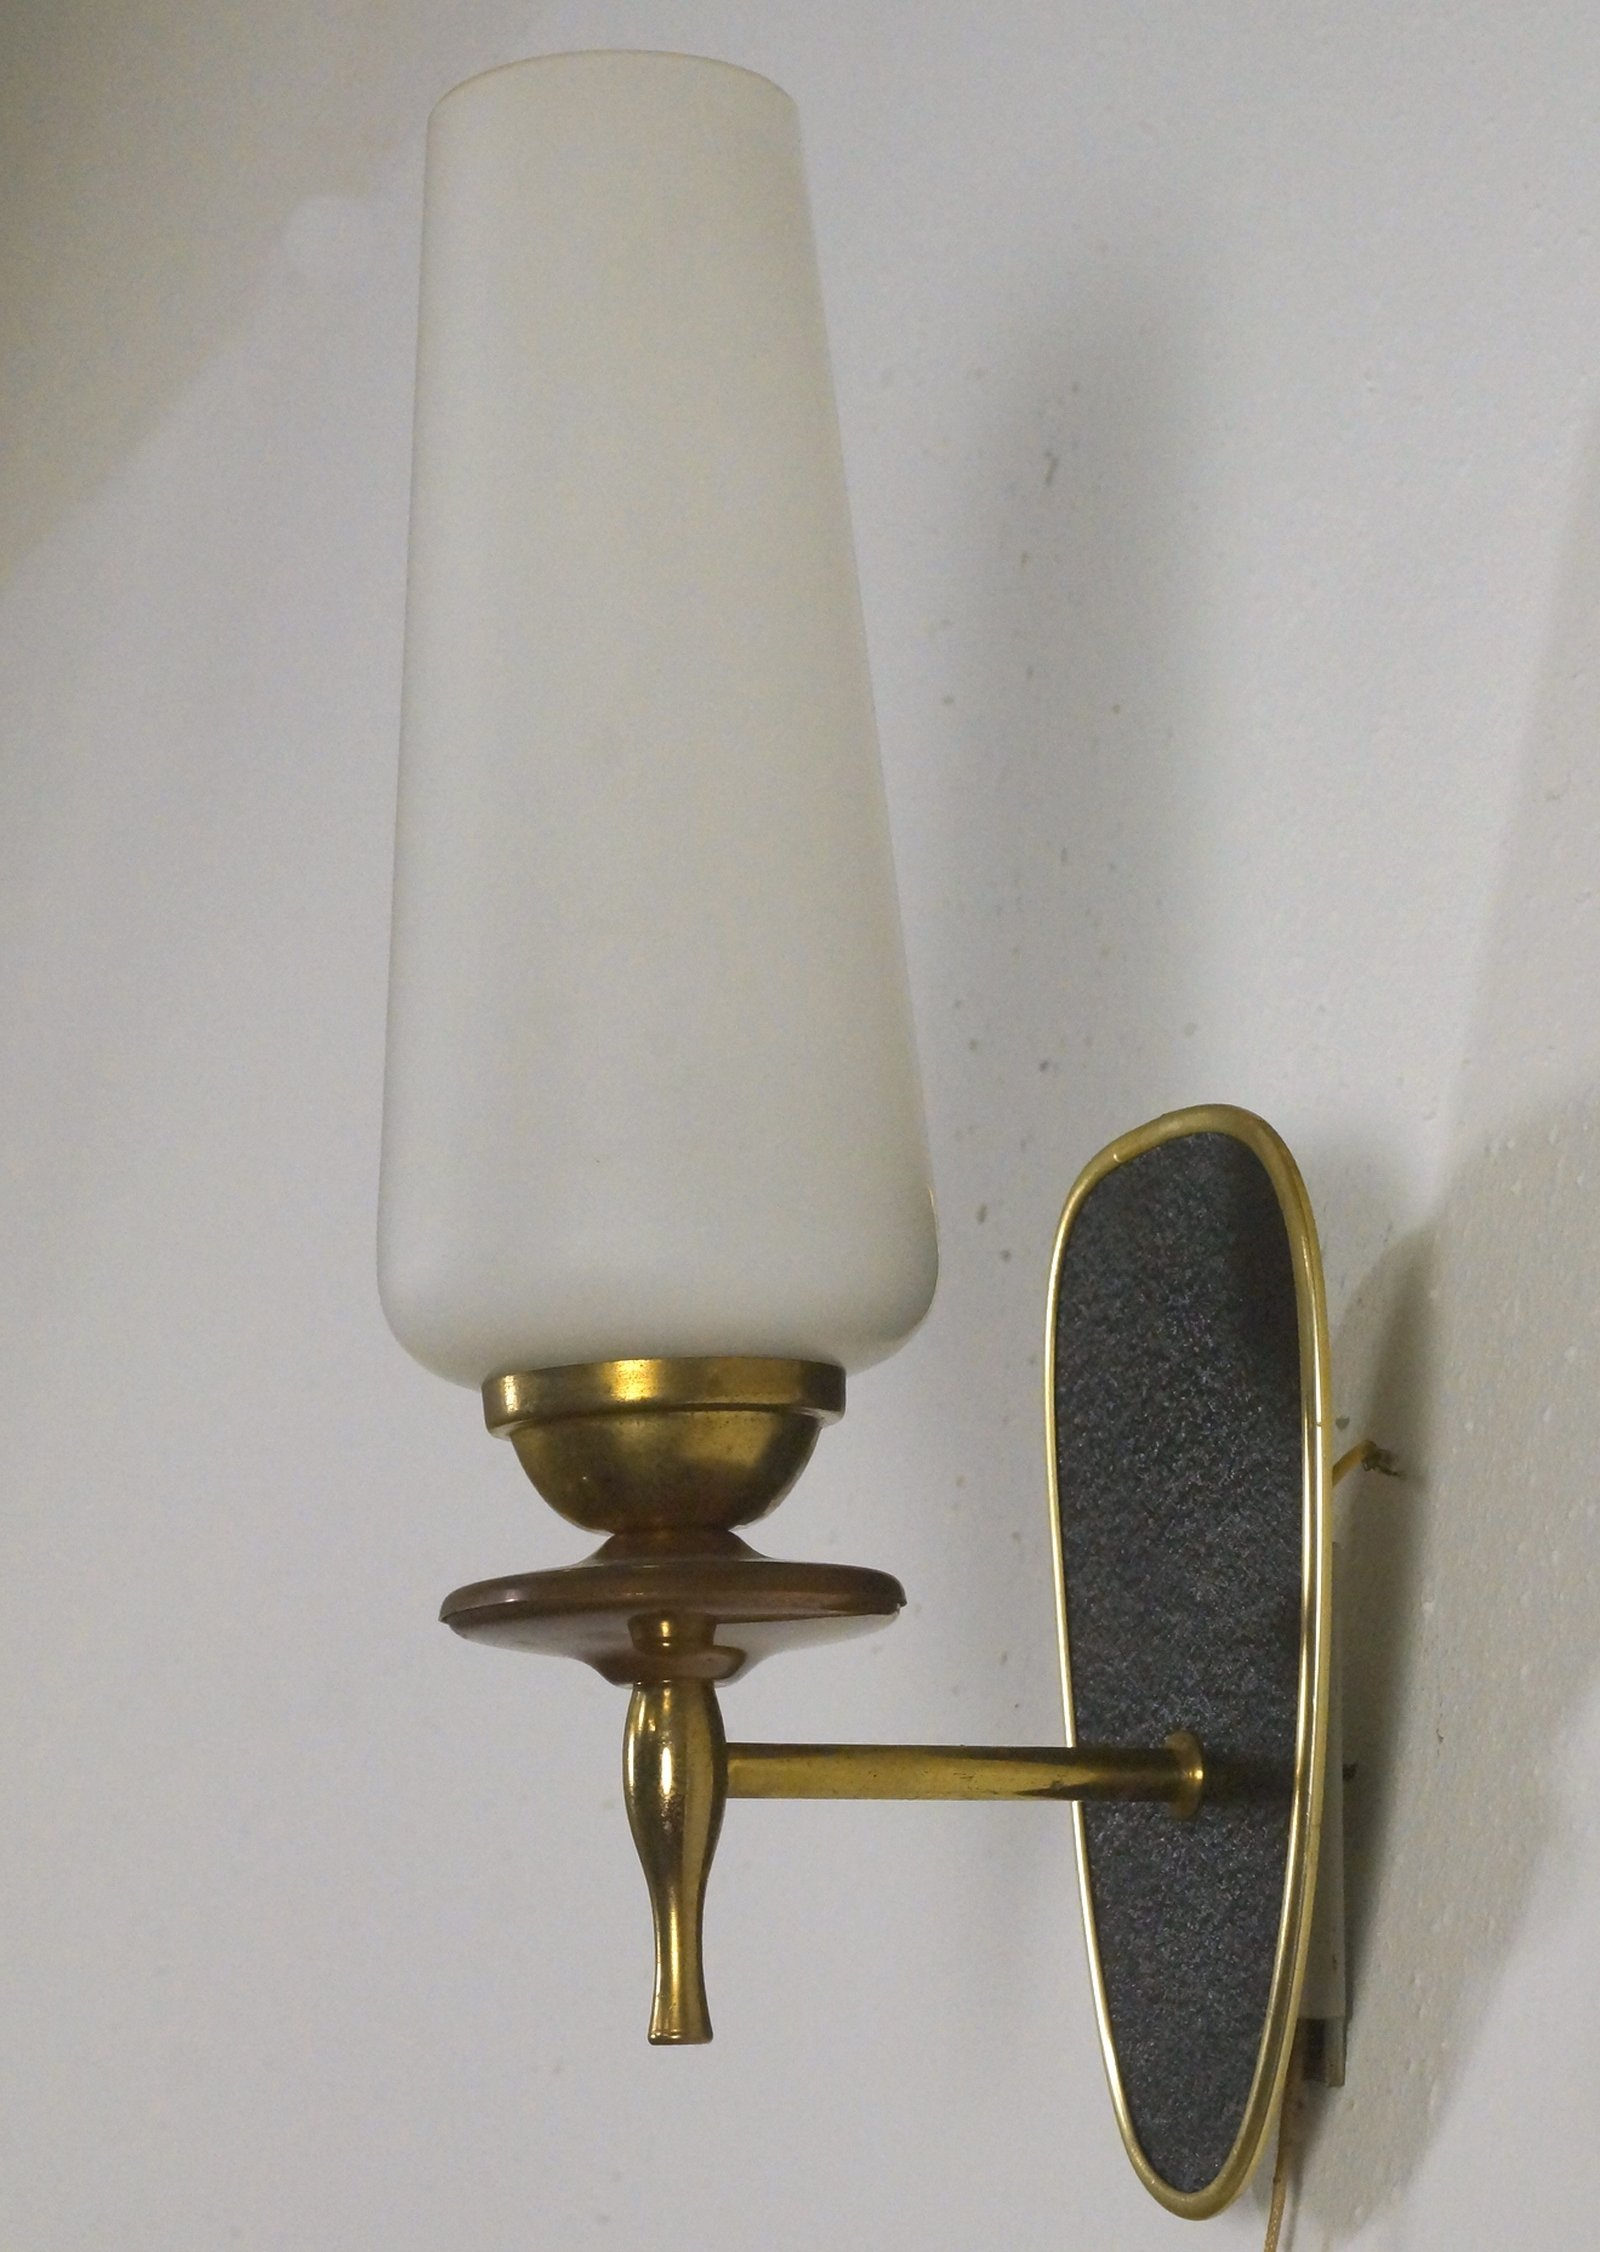 Wall Lamps Vintage : Pair of vintage wall lamps, 1950s #58385